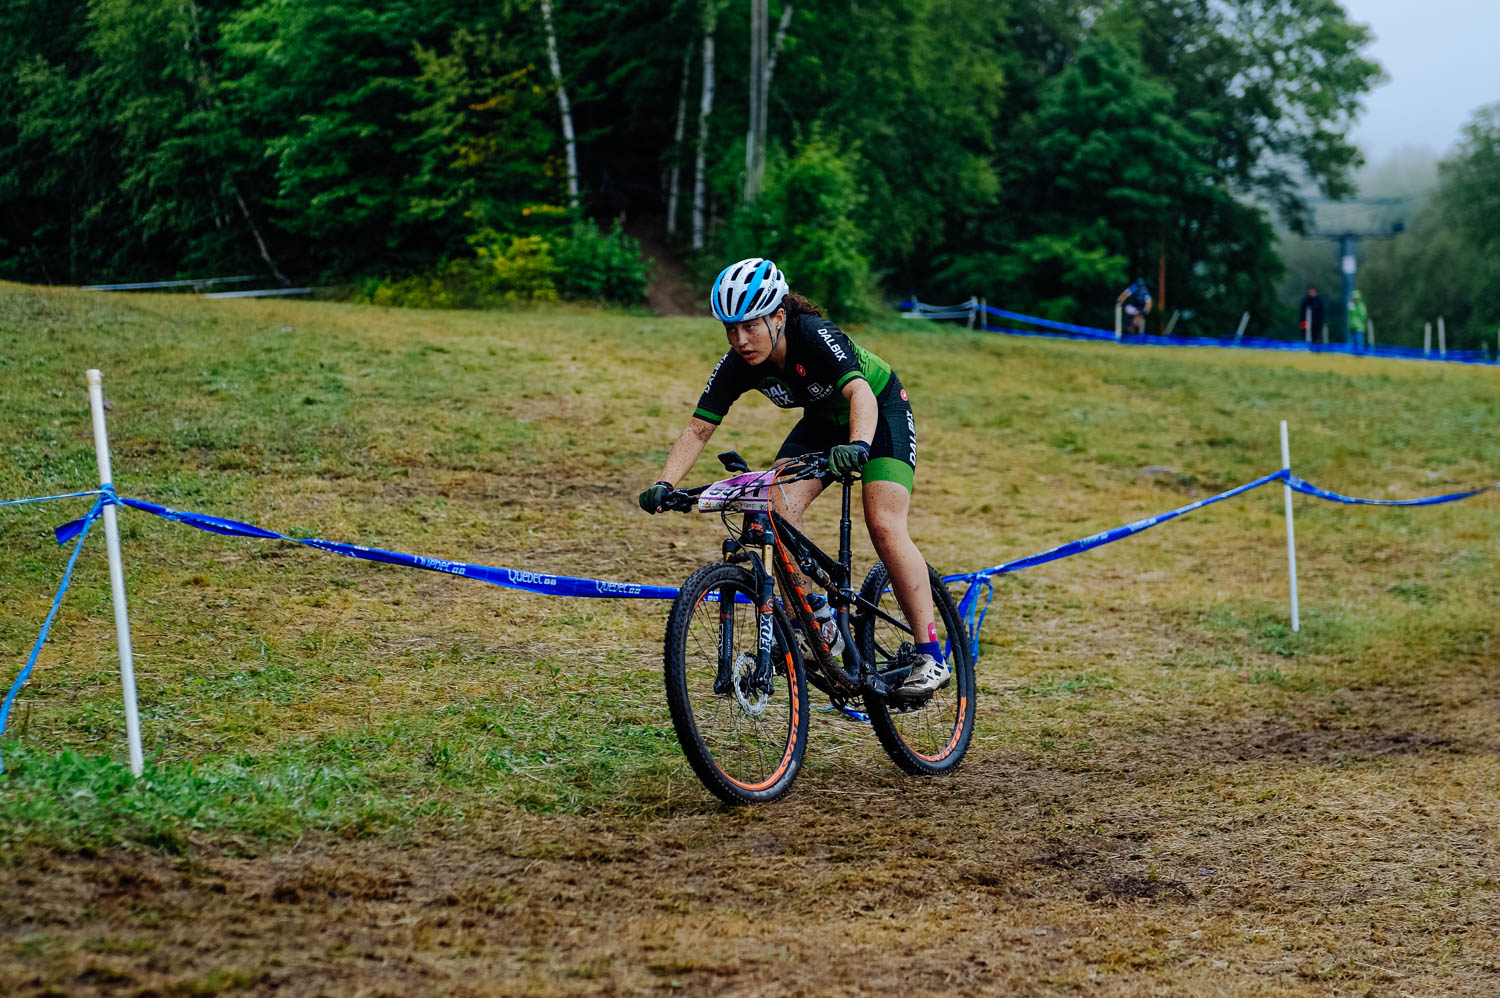 The girls sure got a taste of cyclocross with that course!